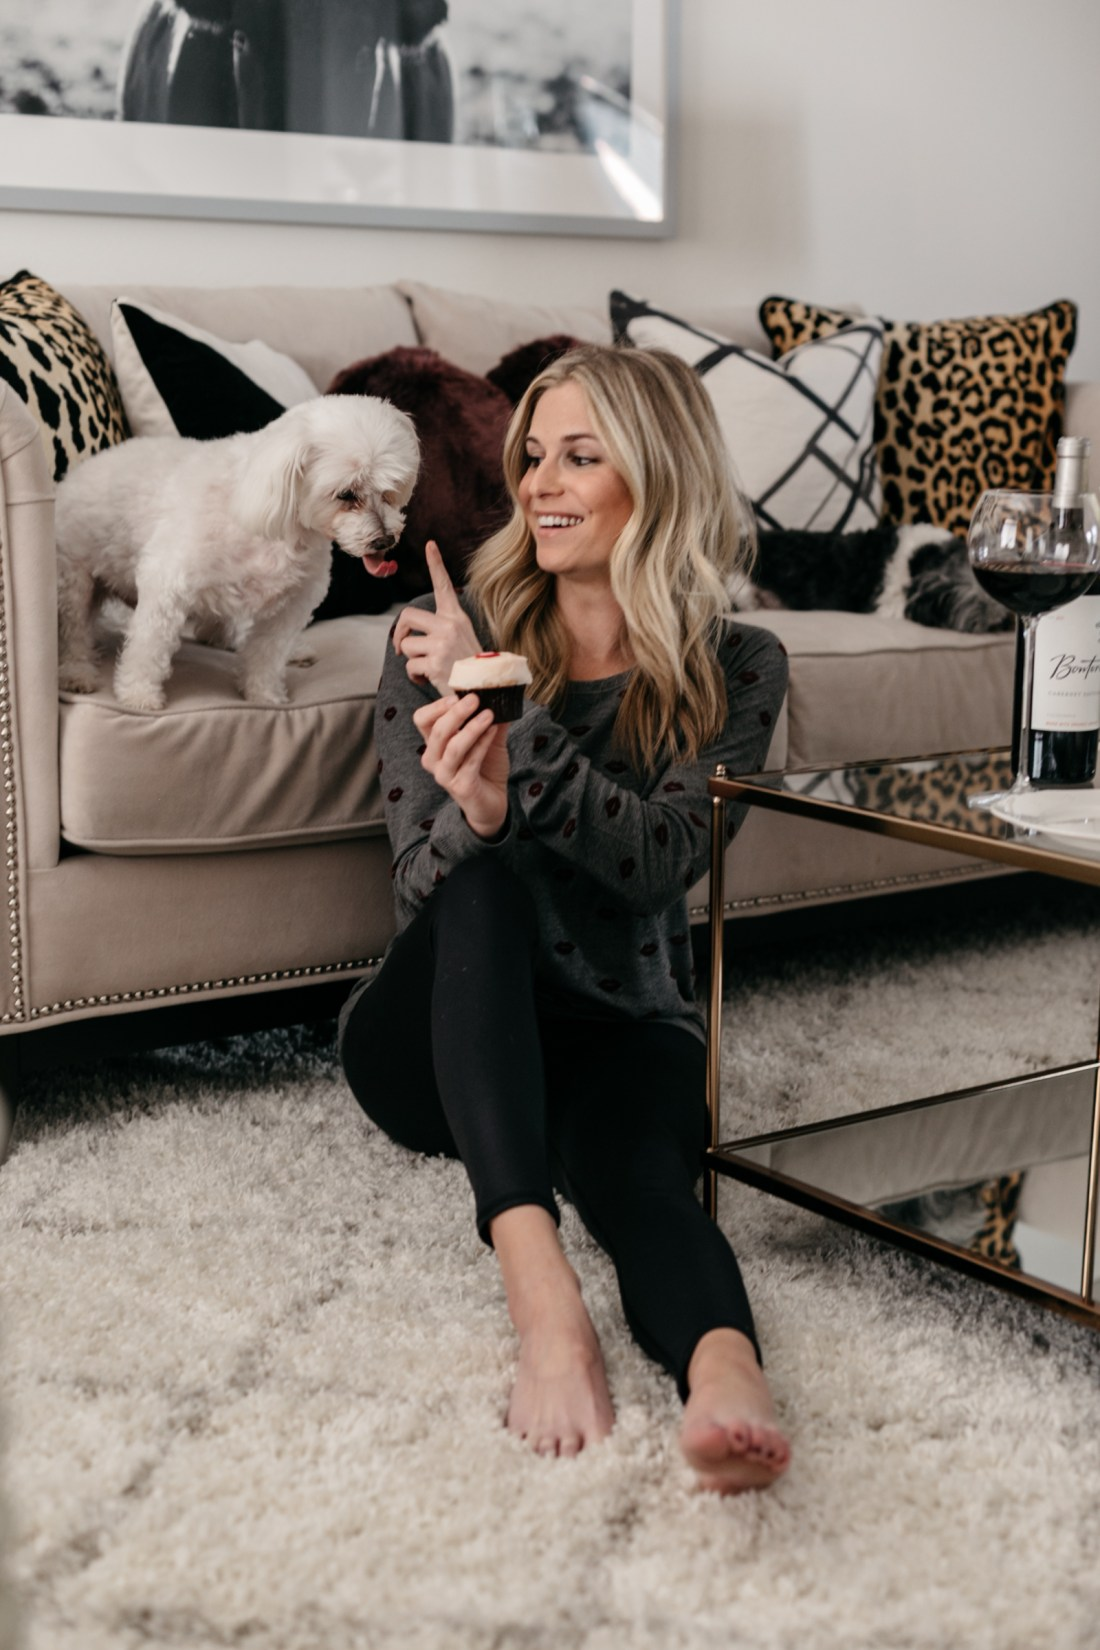 Brooke Burnett with her dog eating cupcake and drinking wine